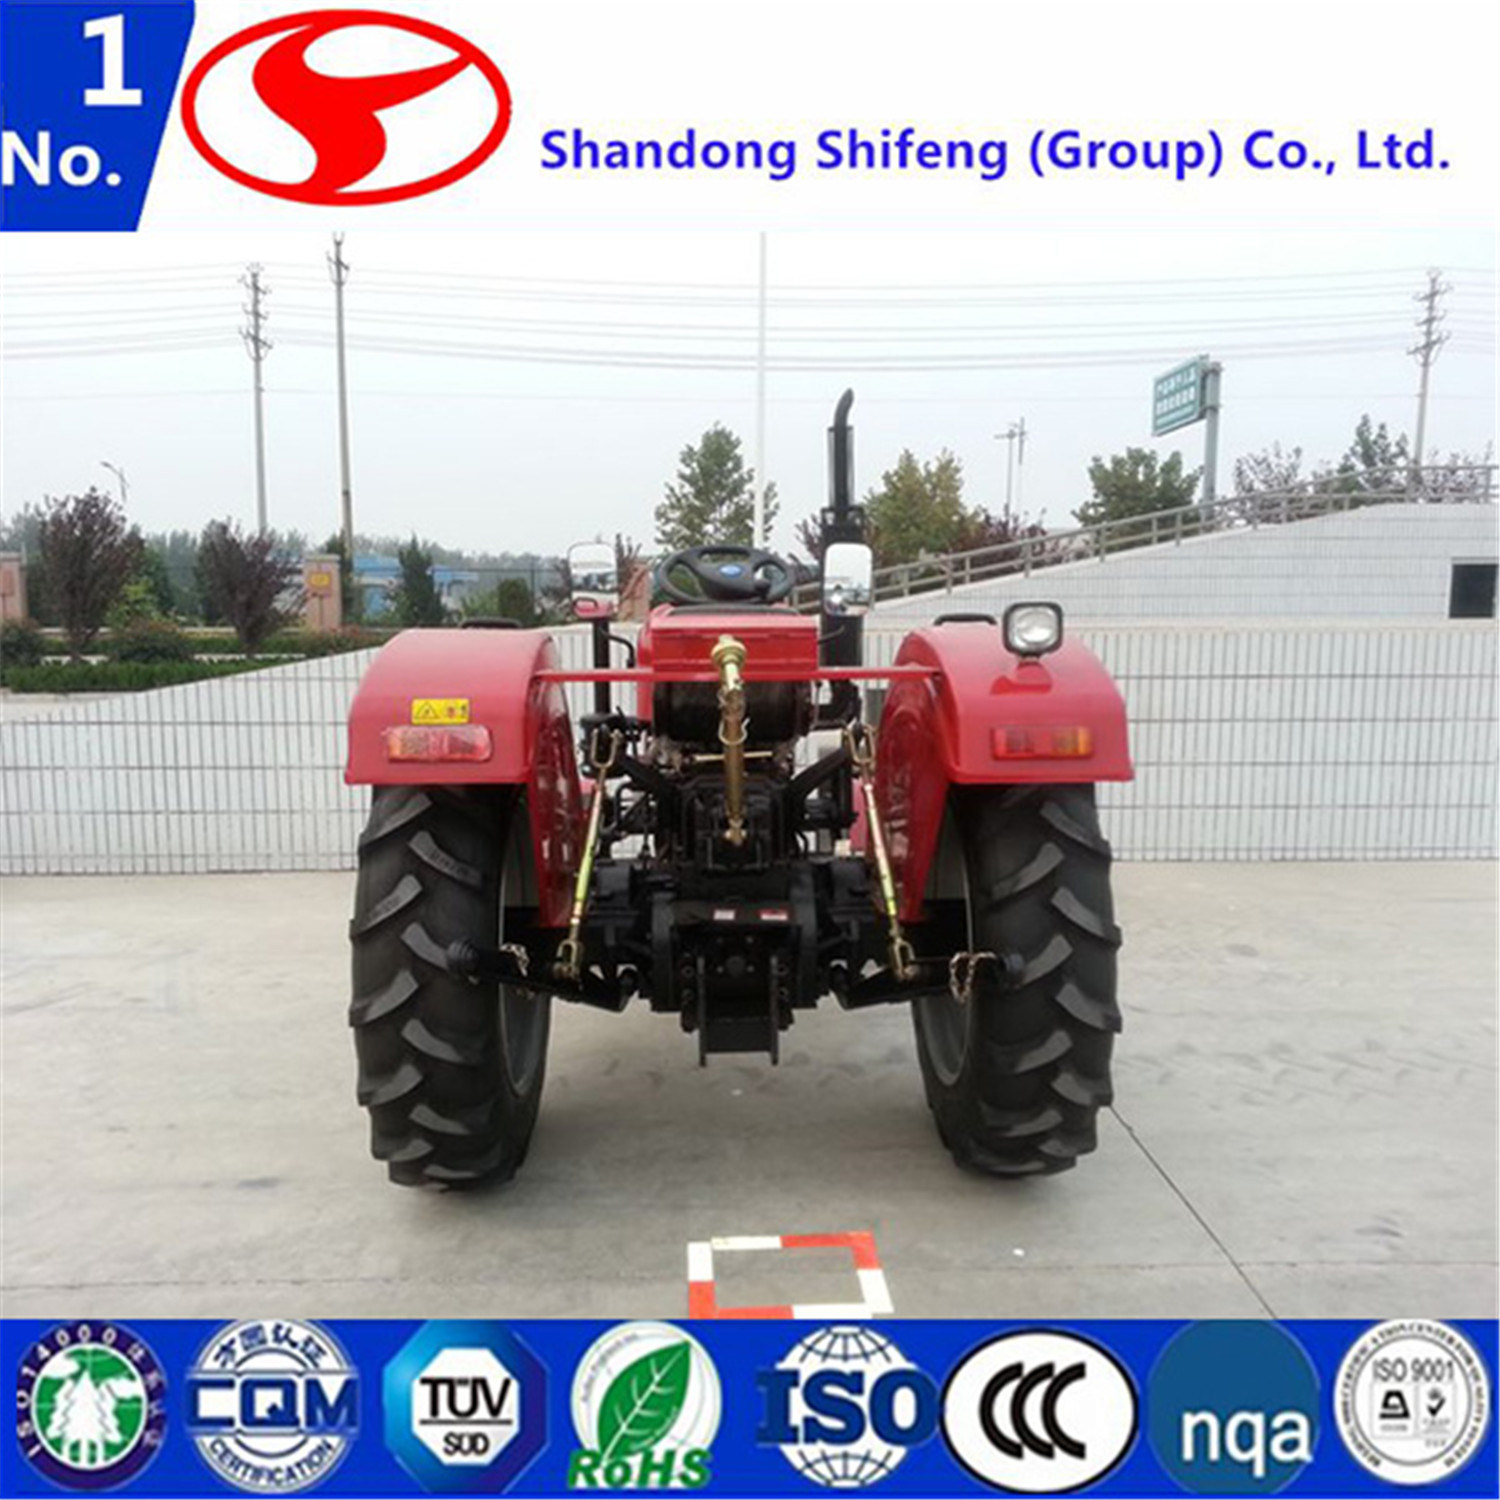 compact tractor packages for sale near me